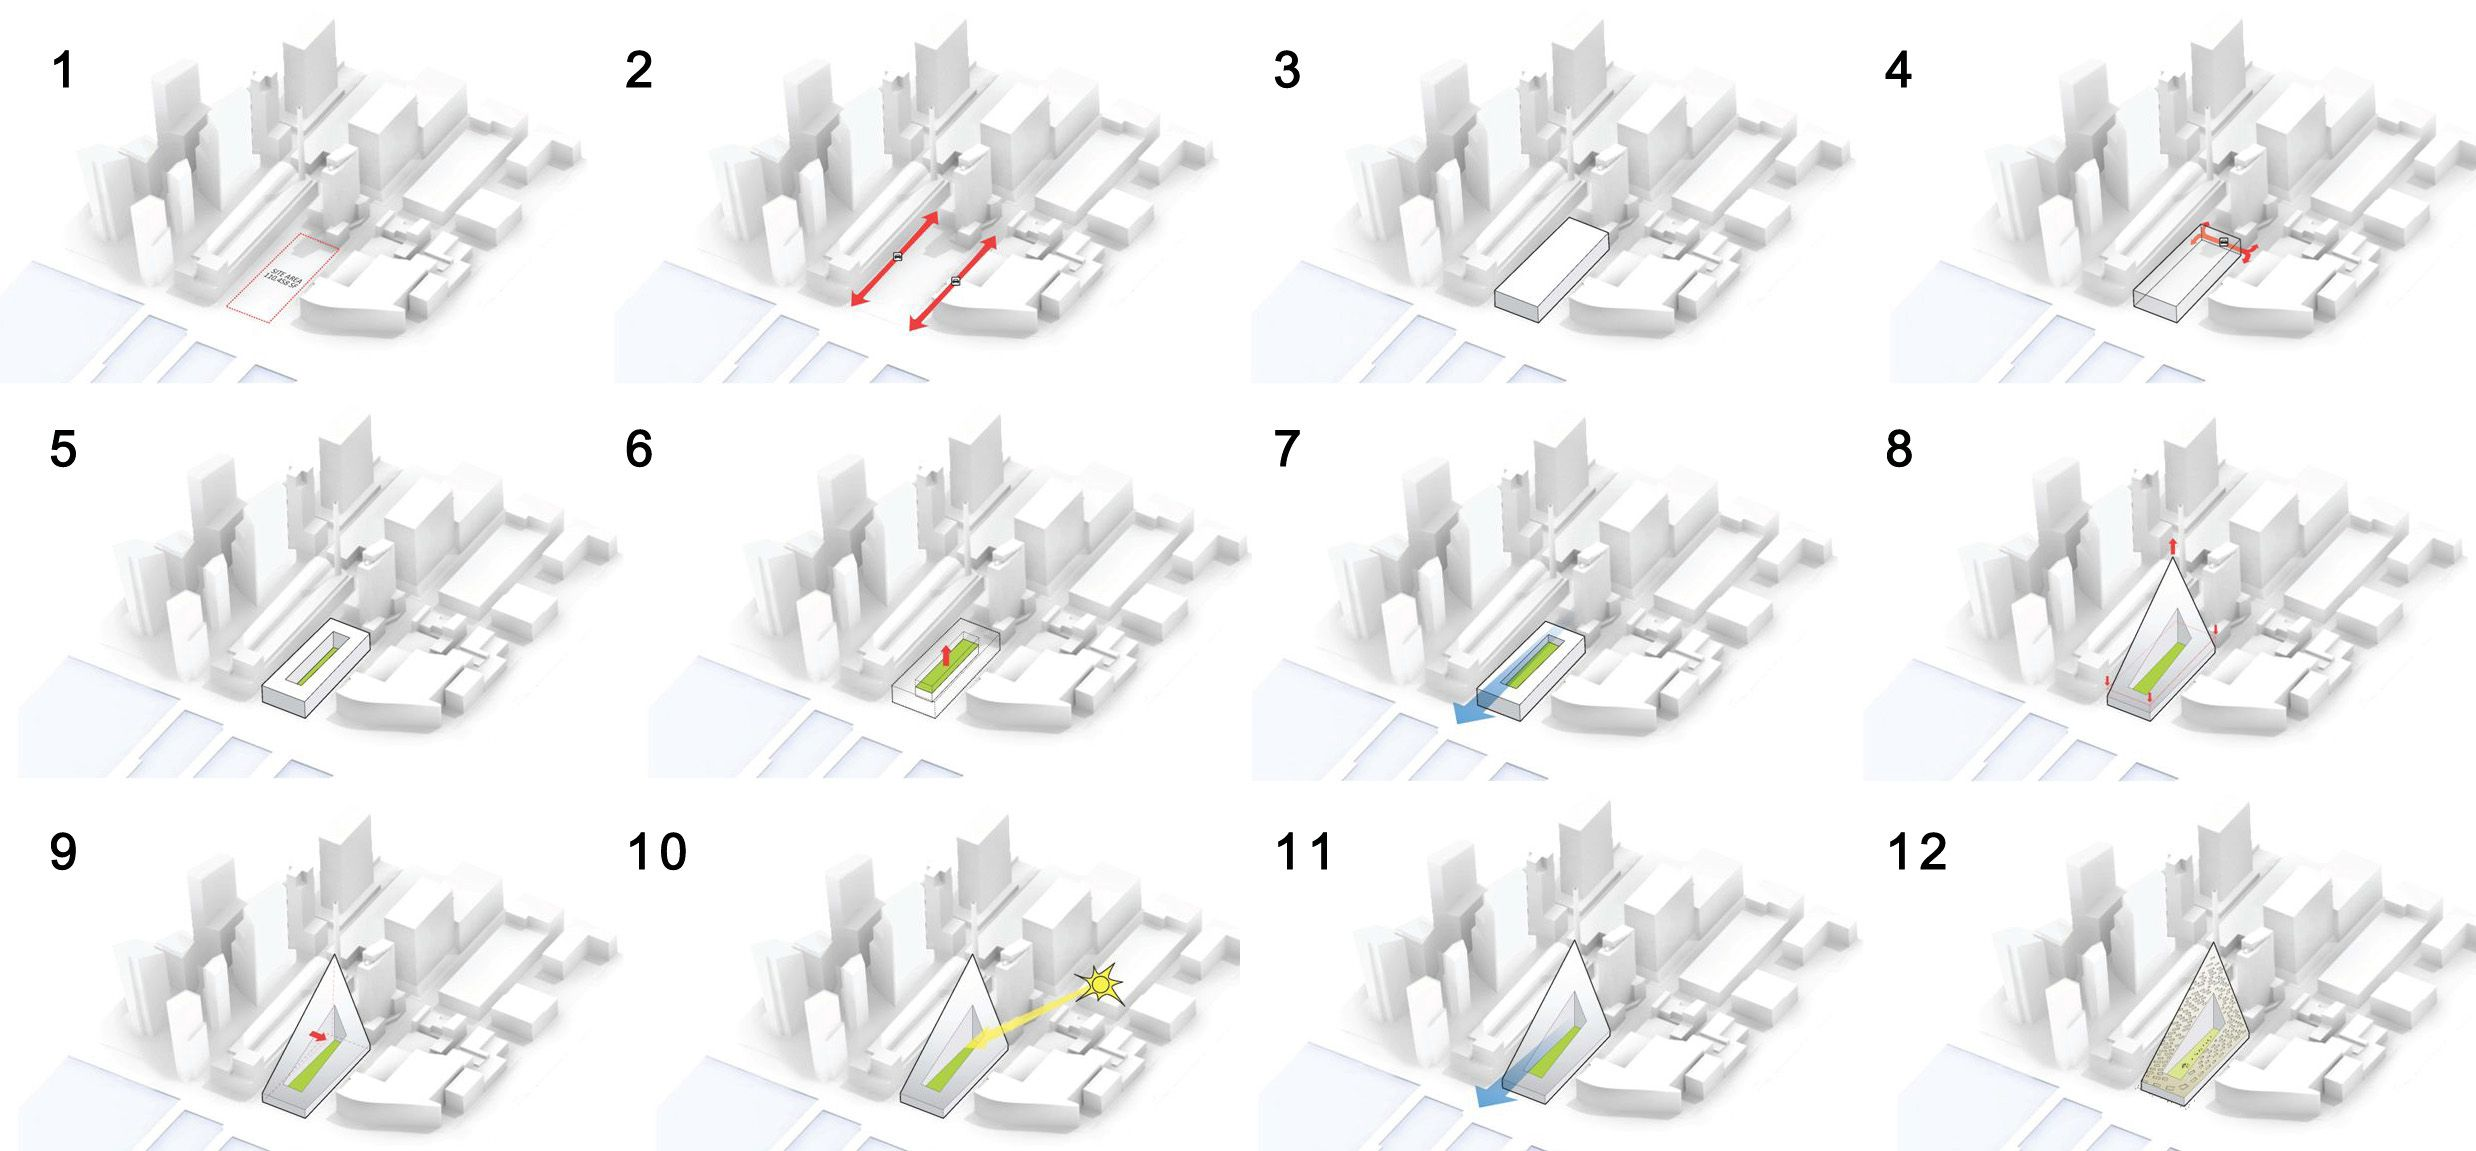 Program diagrams architecture google search arch diagrams - Diagram By Big Architectural Urban Design Dissemination When It Is Best